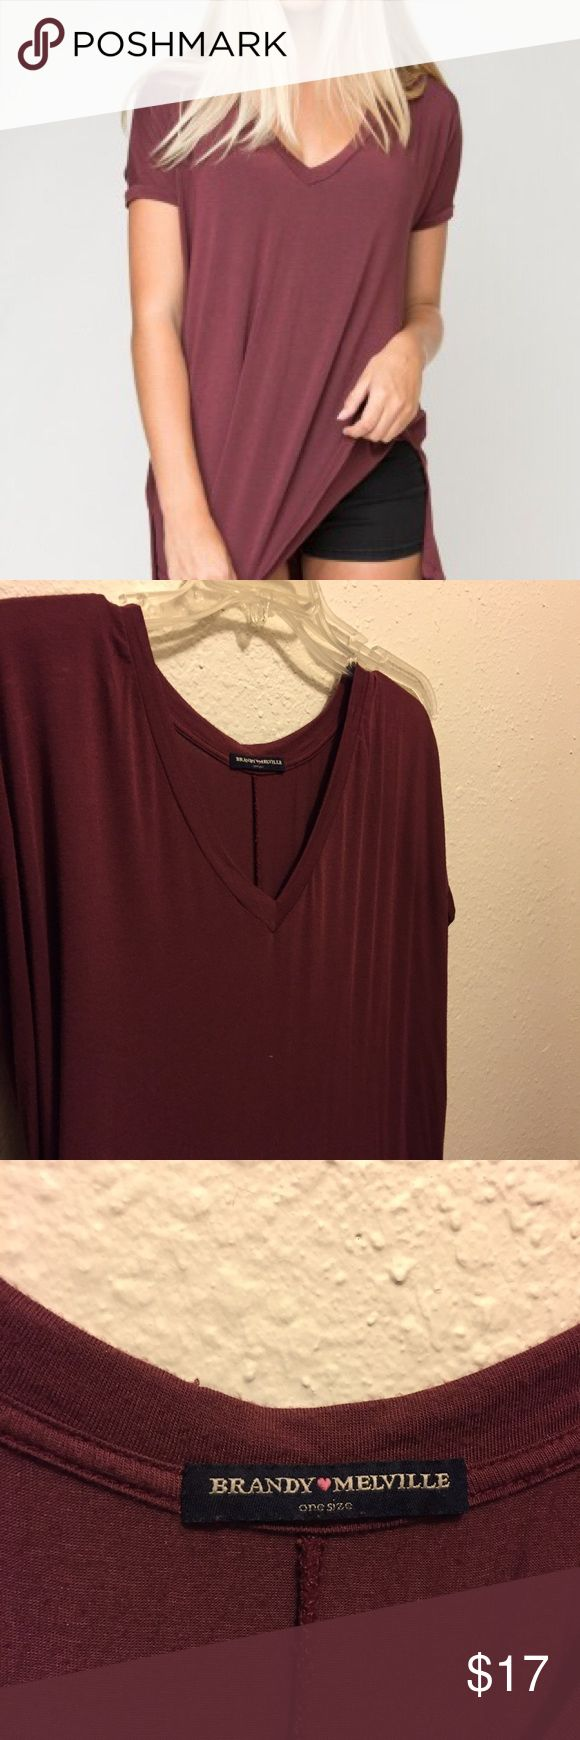 Brandy Melville Milan shirt BM Milan t shirt in burgundy. There's a little hole in the back and some weird stitching, but they're extremely unnoticeable when on. I love this but the arm holes are too small on me. Open to offers! Brandy Melville Tops Tees - Short Sleeve